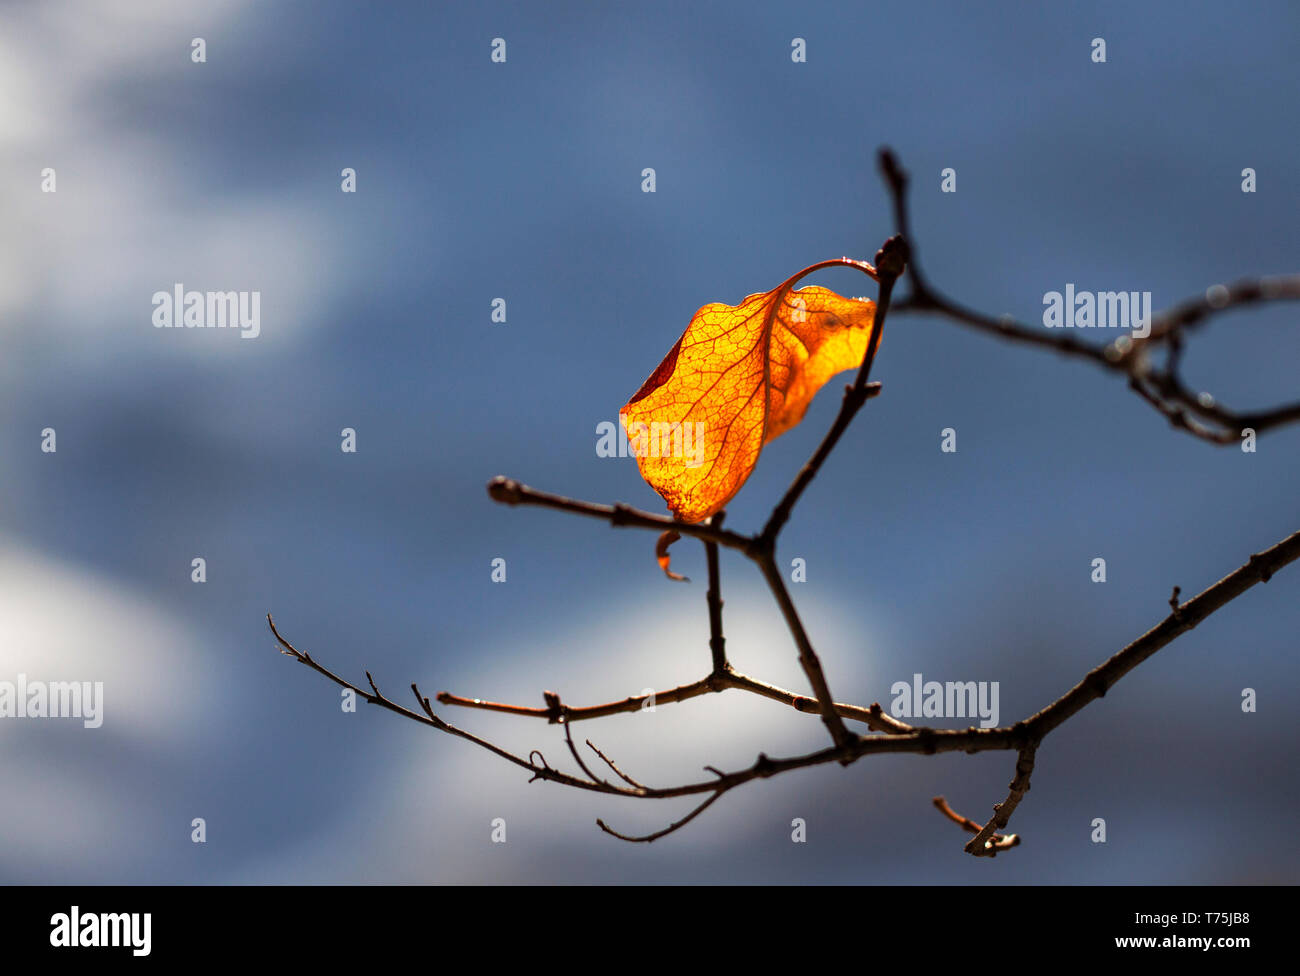 lonely autumn leaf on a branch - Stock Image